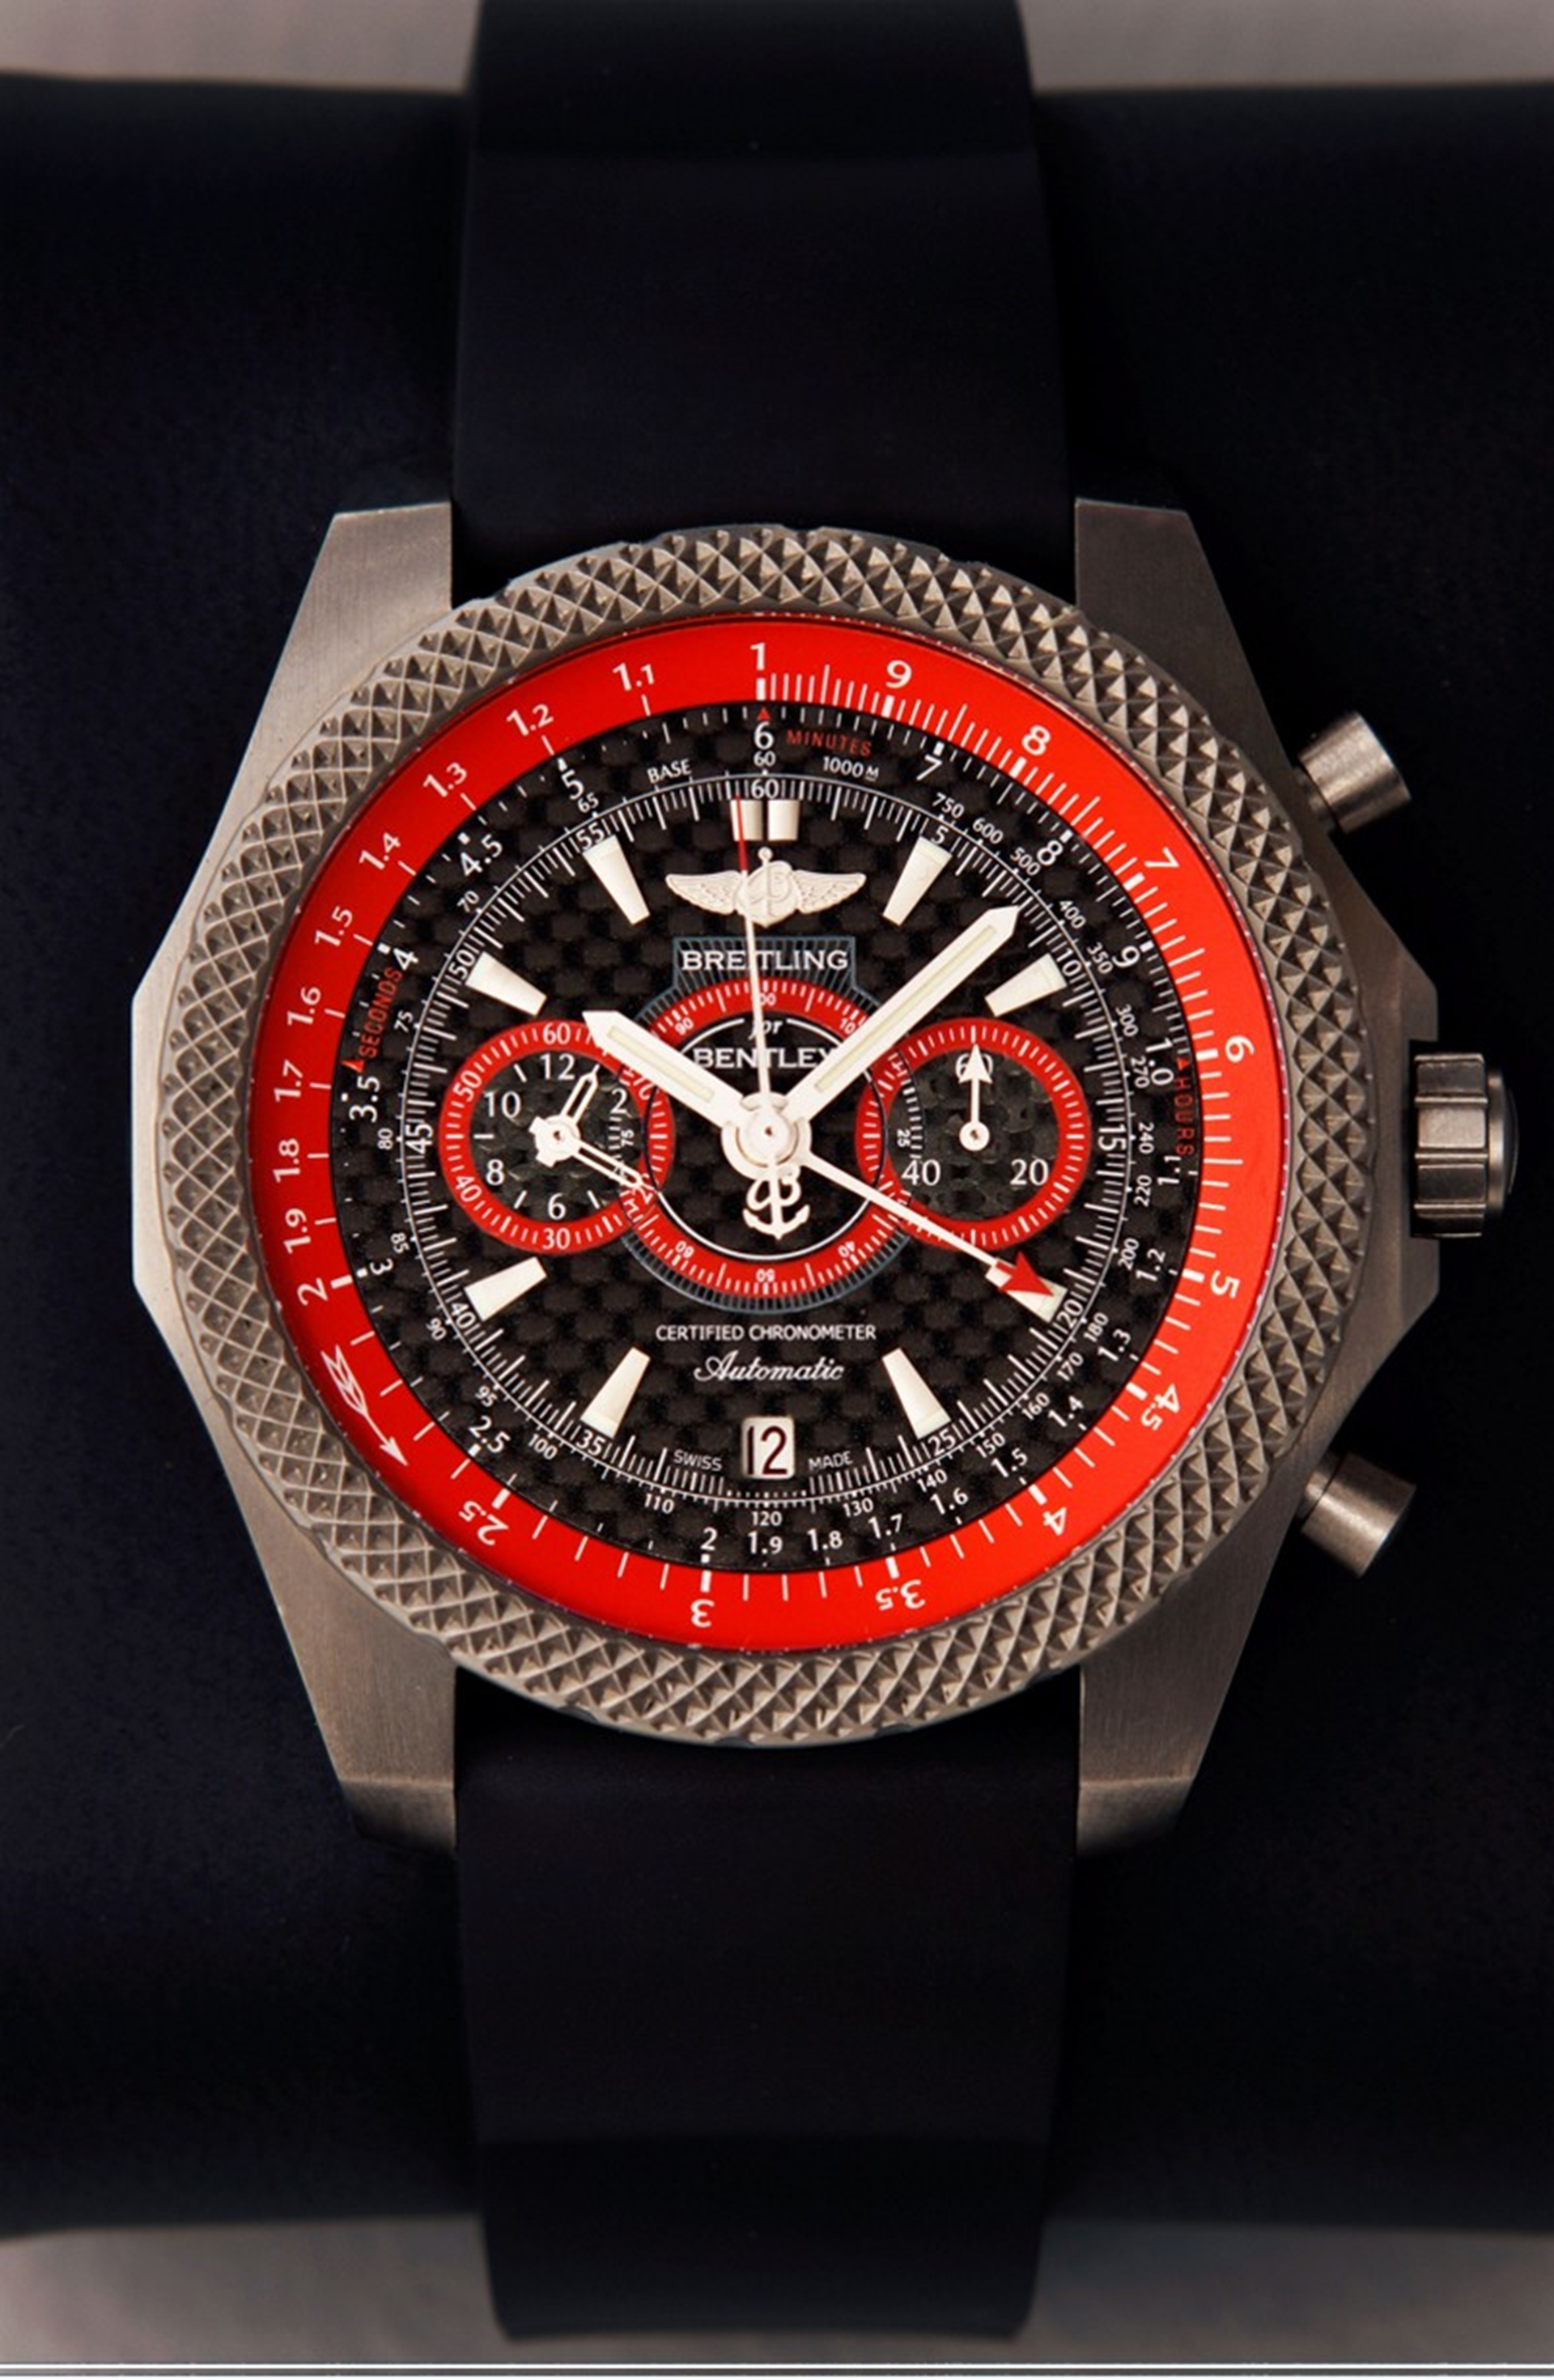 Breitling for Bentley: cool and chic - the ice-speed record watch